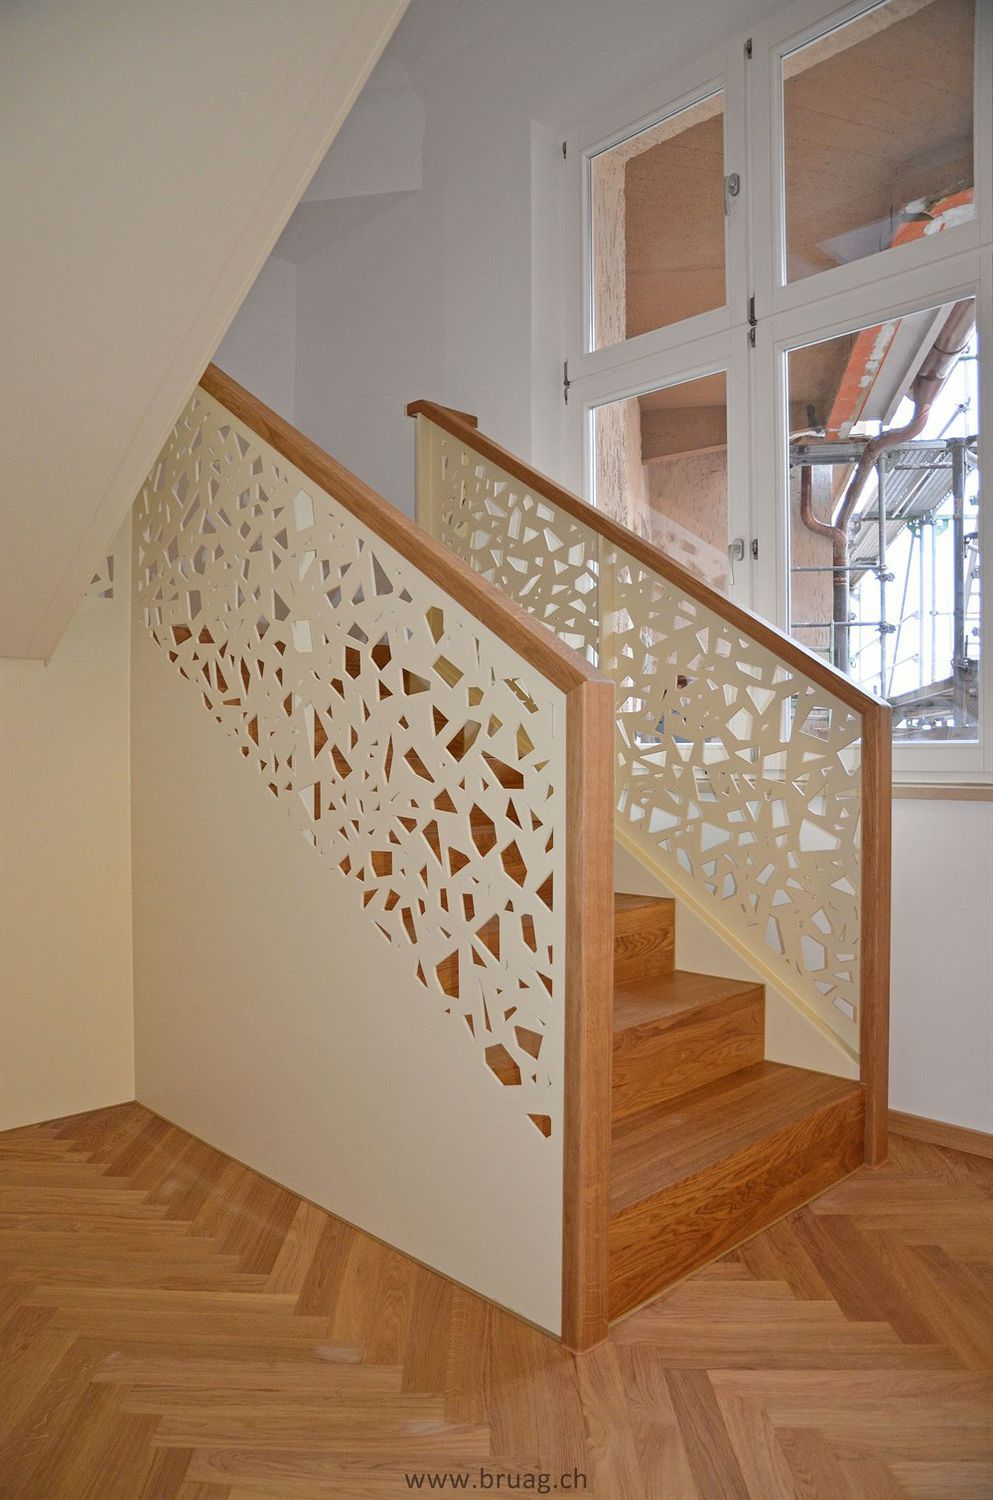 Cover Decorative Panel Wood For Railing For Interior